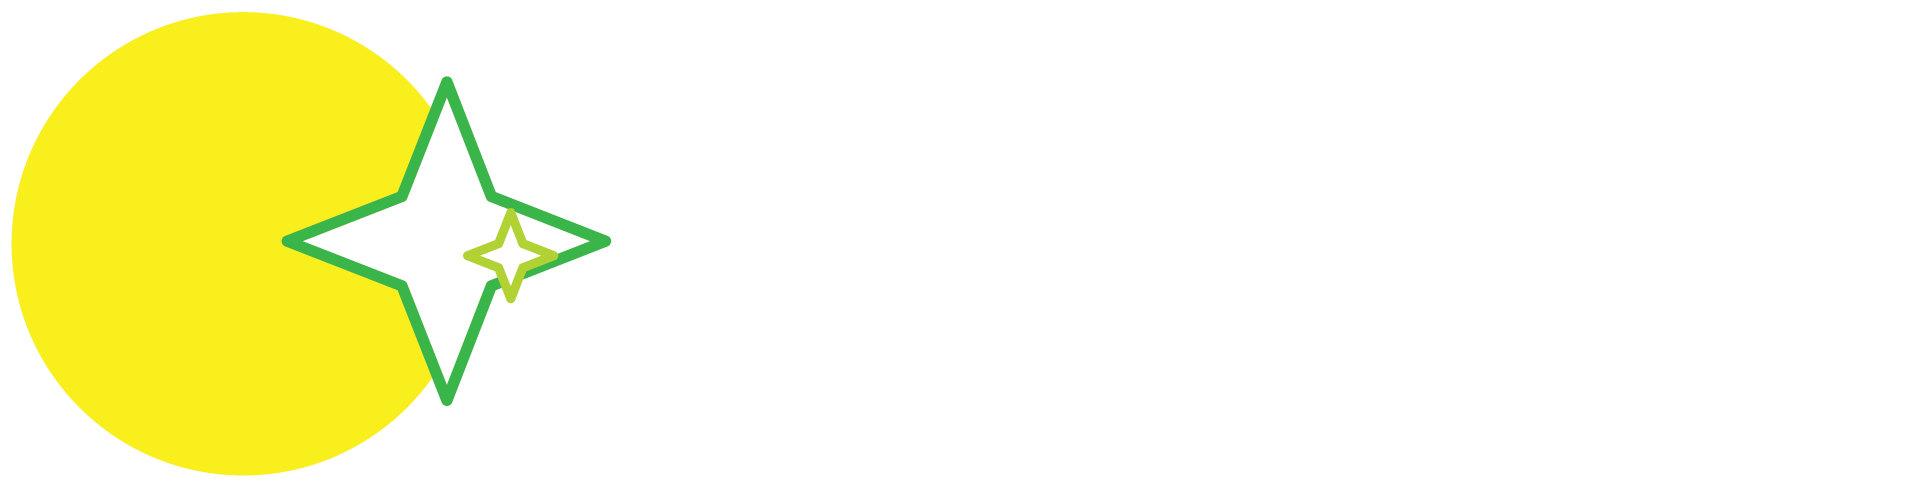 SunTracker Technologies Ltd.